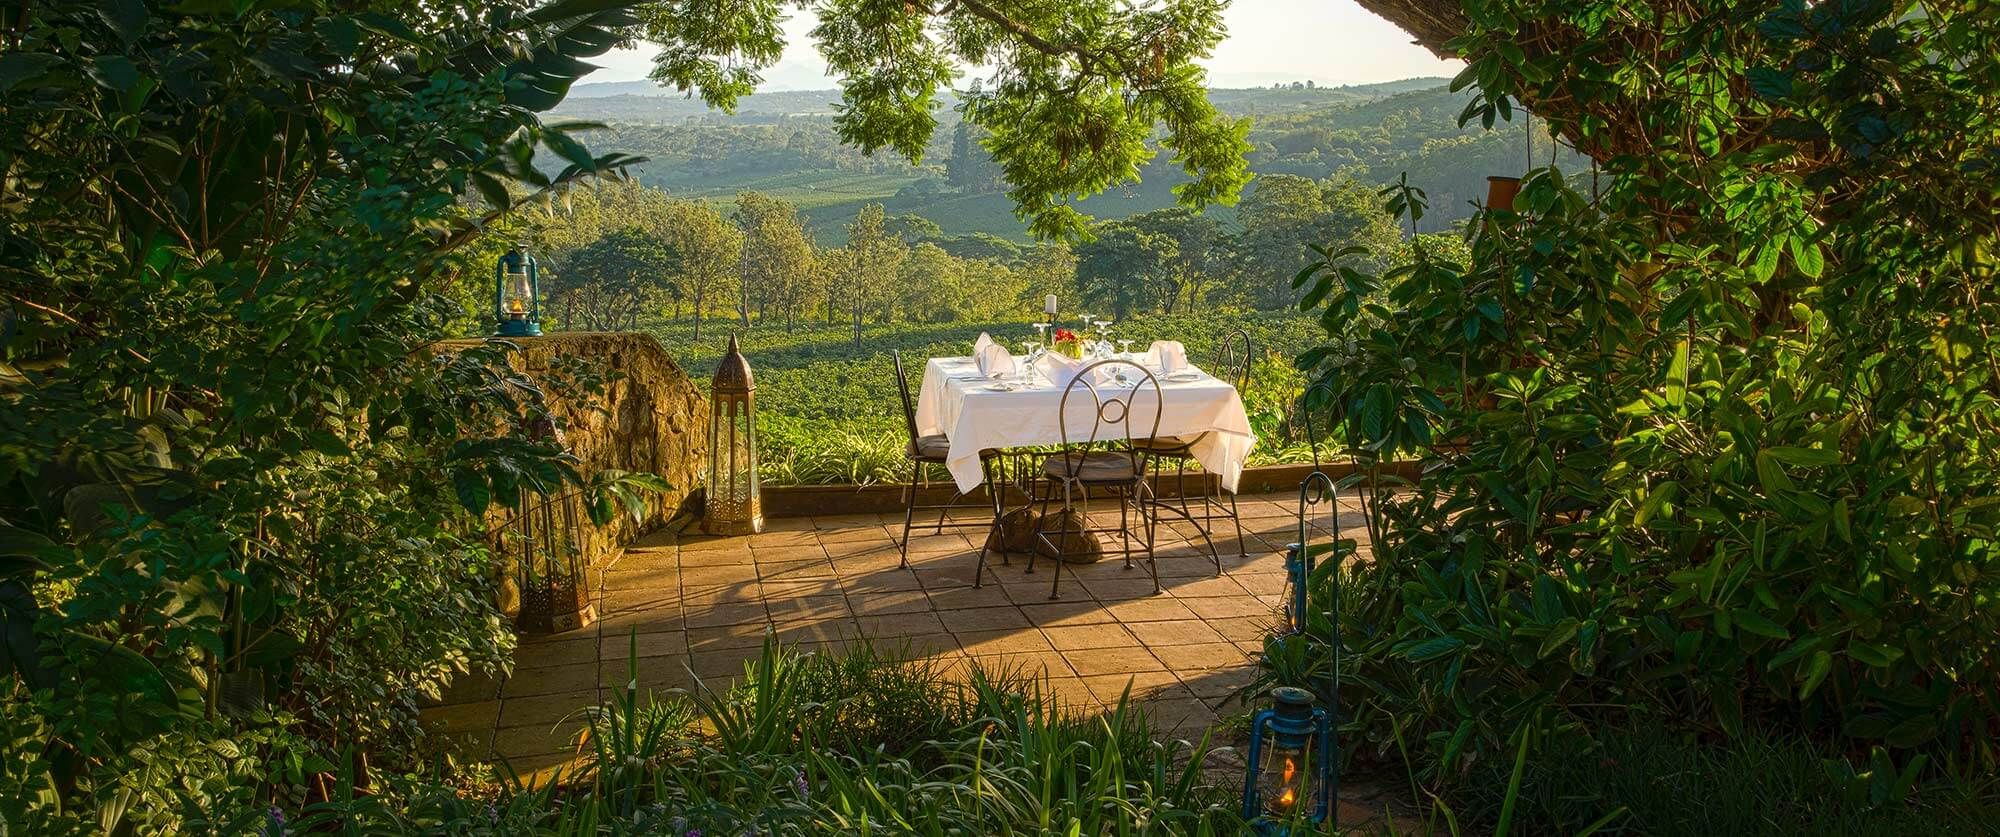 Dining at Gibb's Farm - Ngorongoro Crater Tanzania - Great Migration Safari Packages